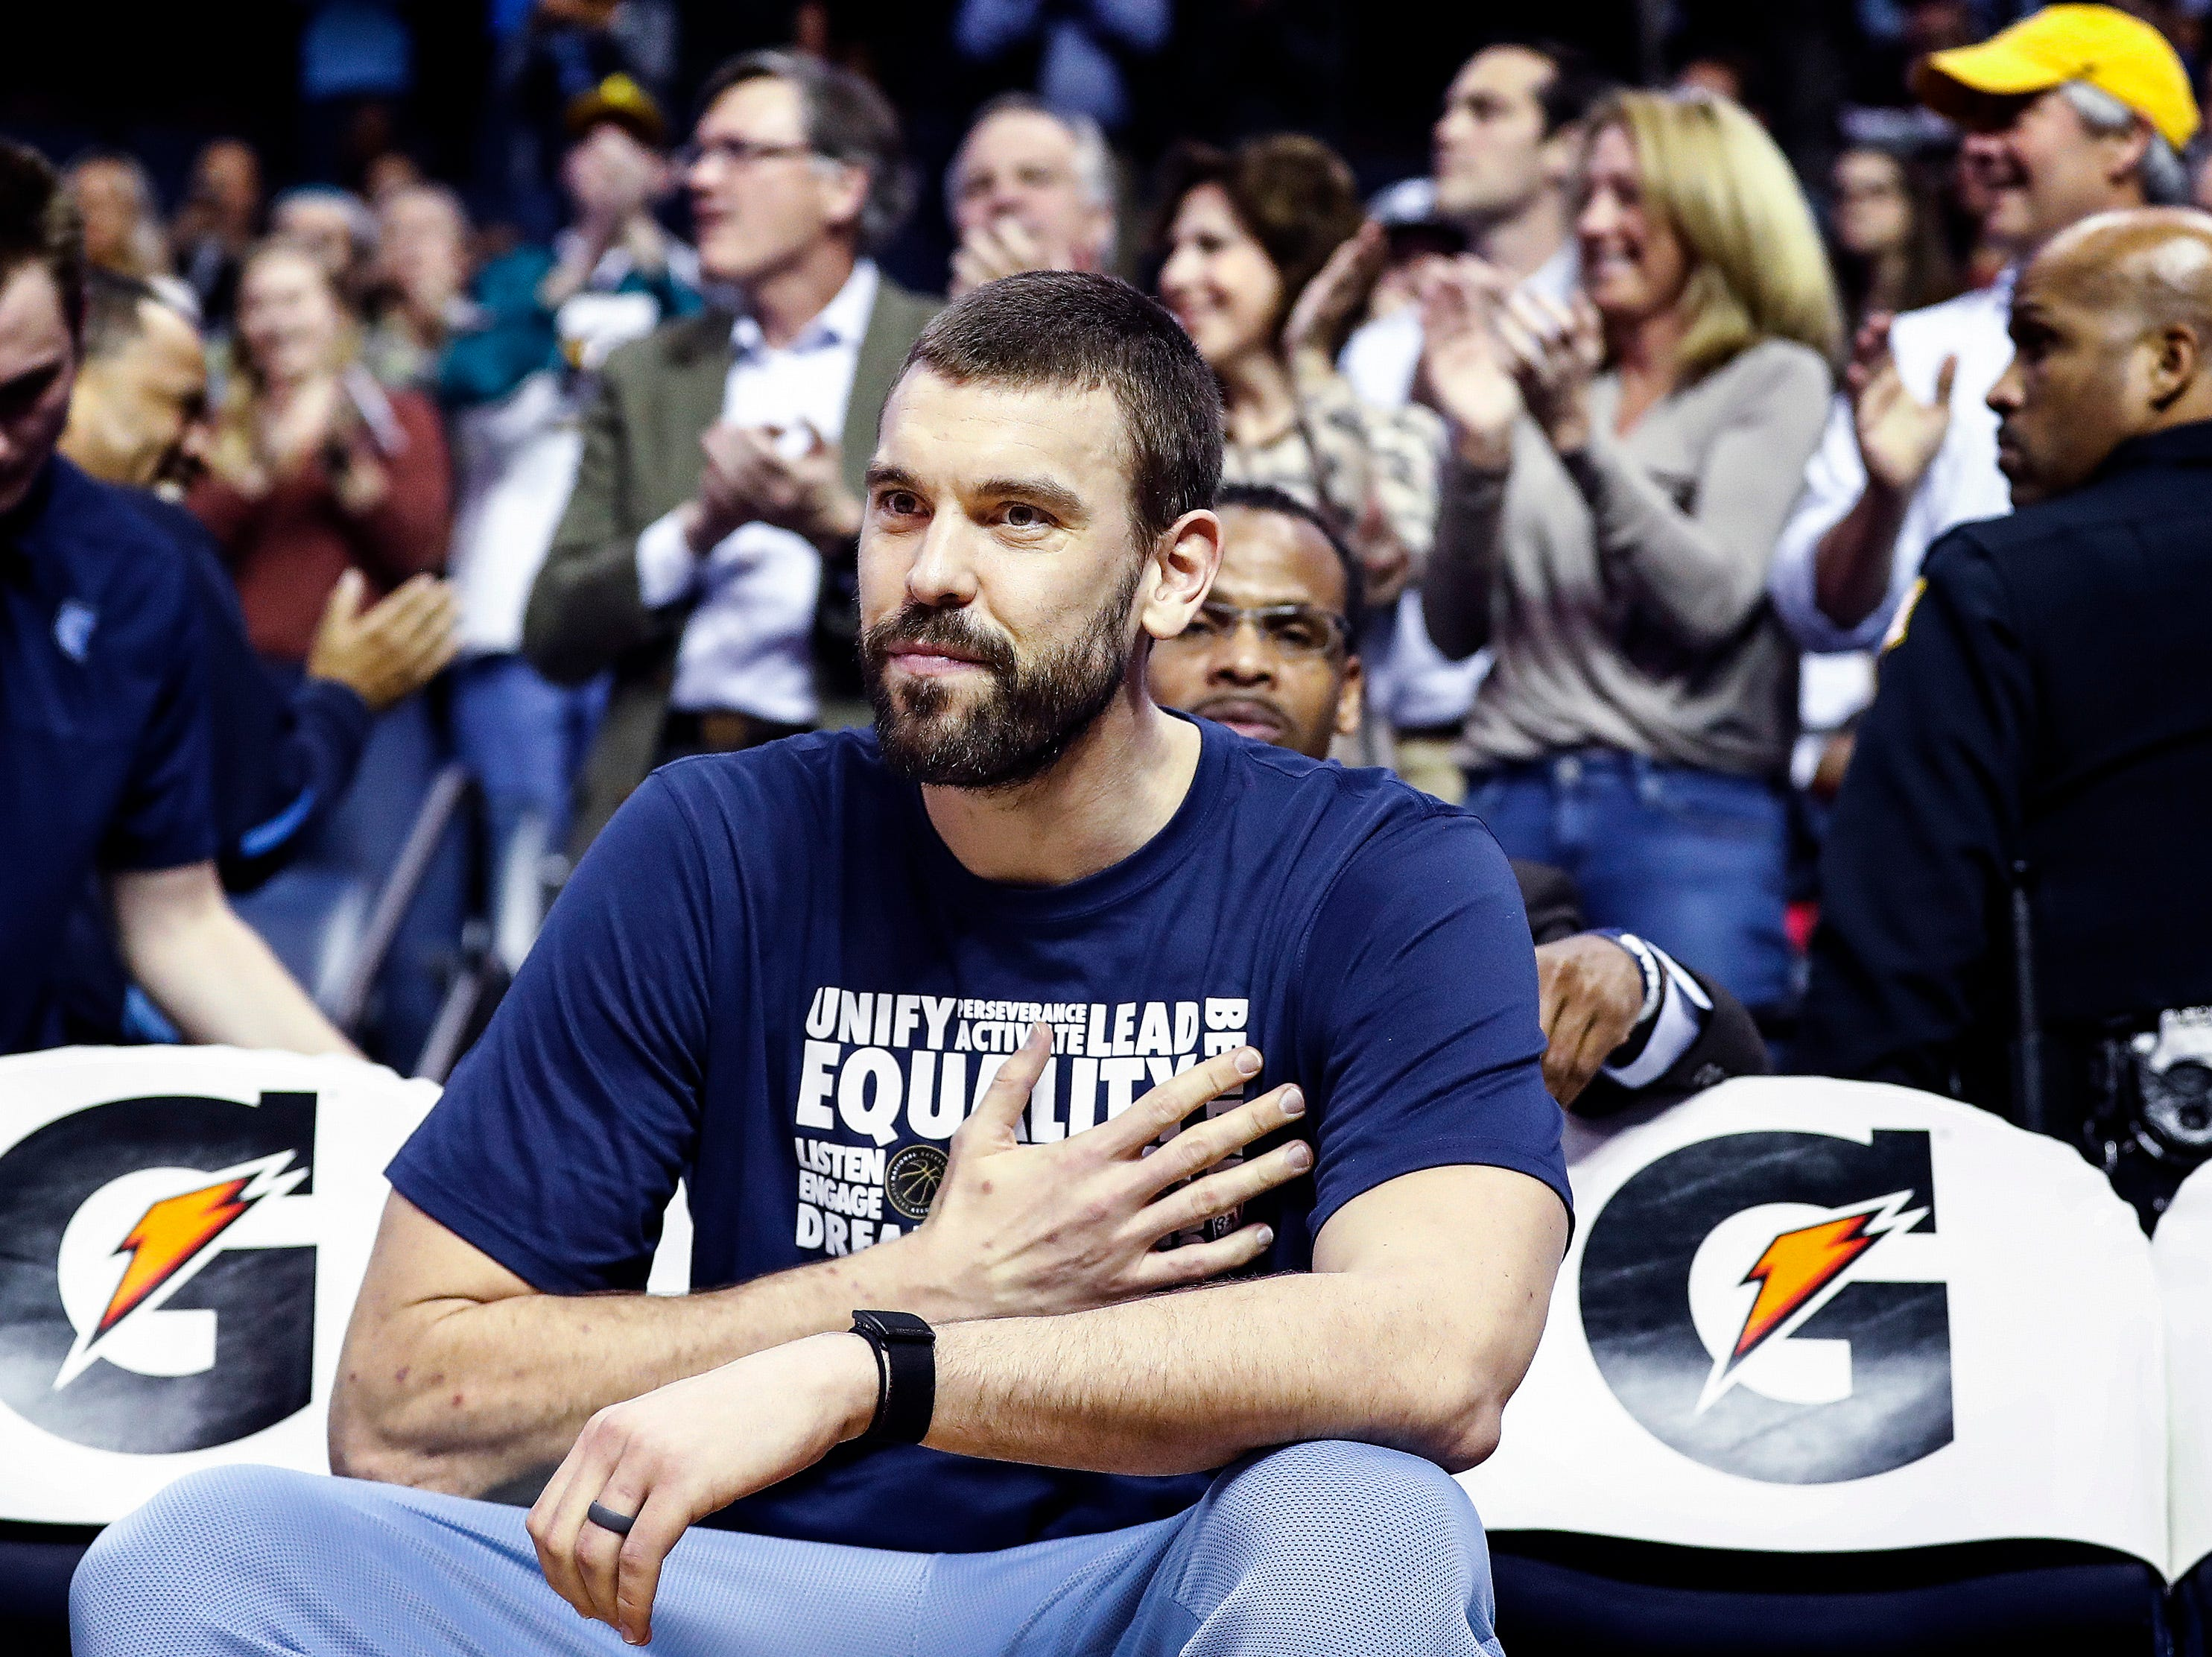 Memphis Grizzlies center Marc Gasol taps his chest over his heart as fans give him a standing ovation during acton against the Minnesota Timberwolves at the FedExForum in Memphis, Tenn., Tuesday, February 5, 2019. Gasol was sitting out the game, as trade rumors emerged that he would be heading to Hornets.